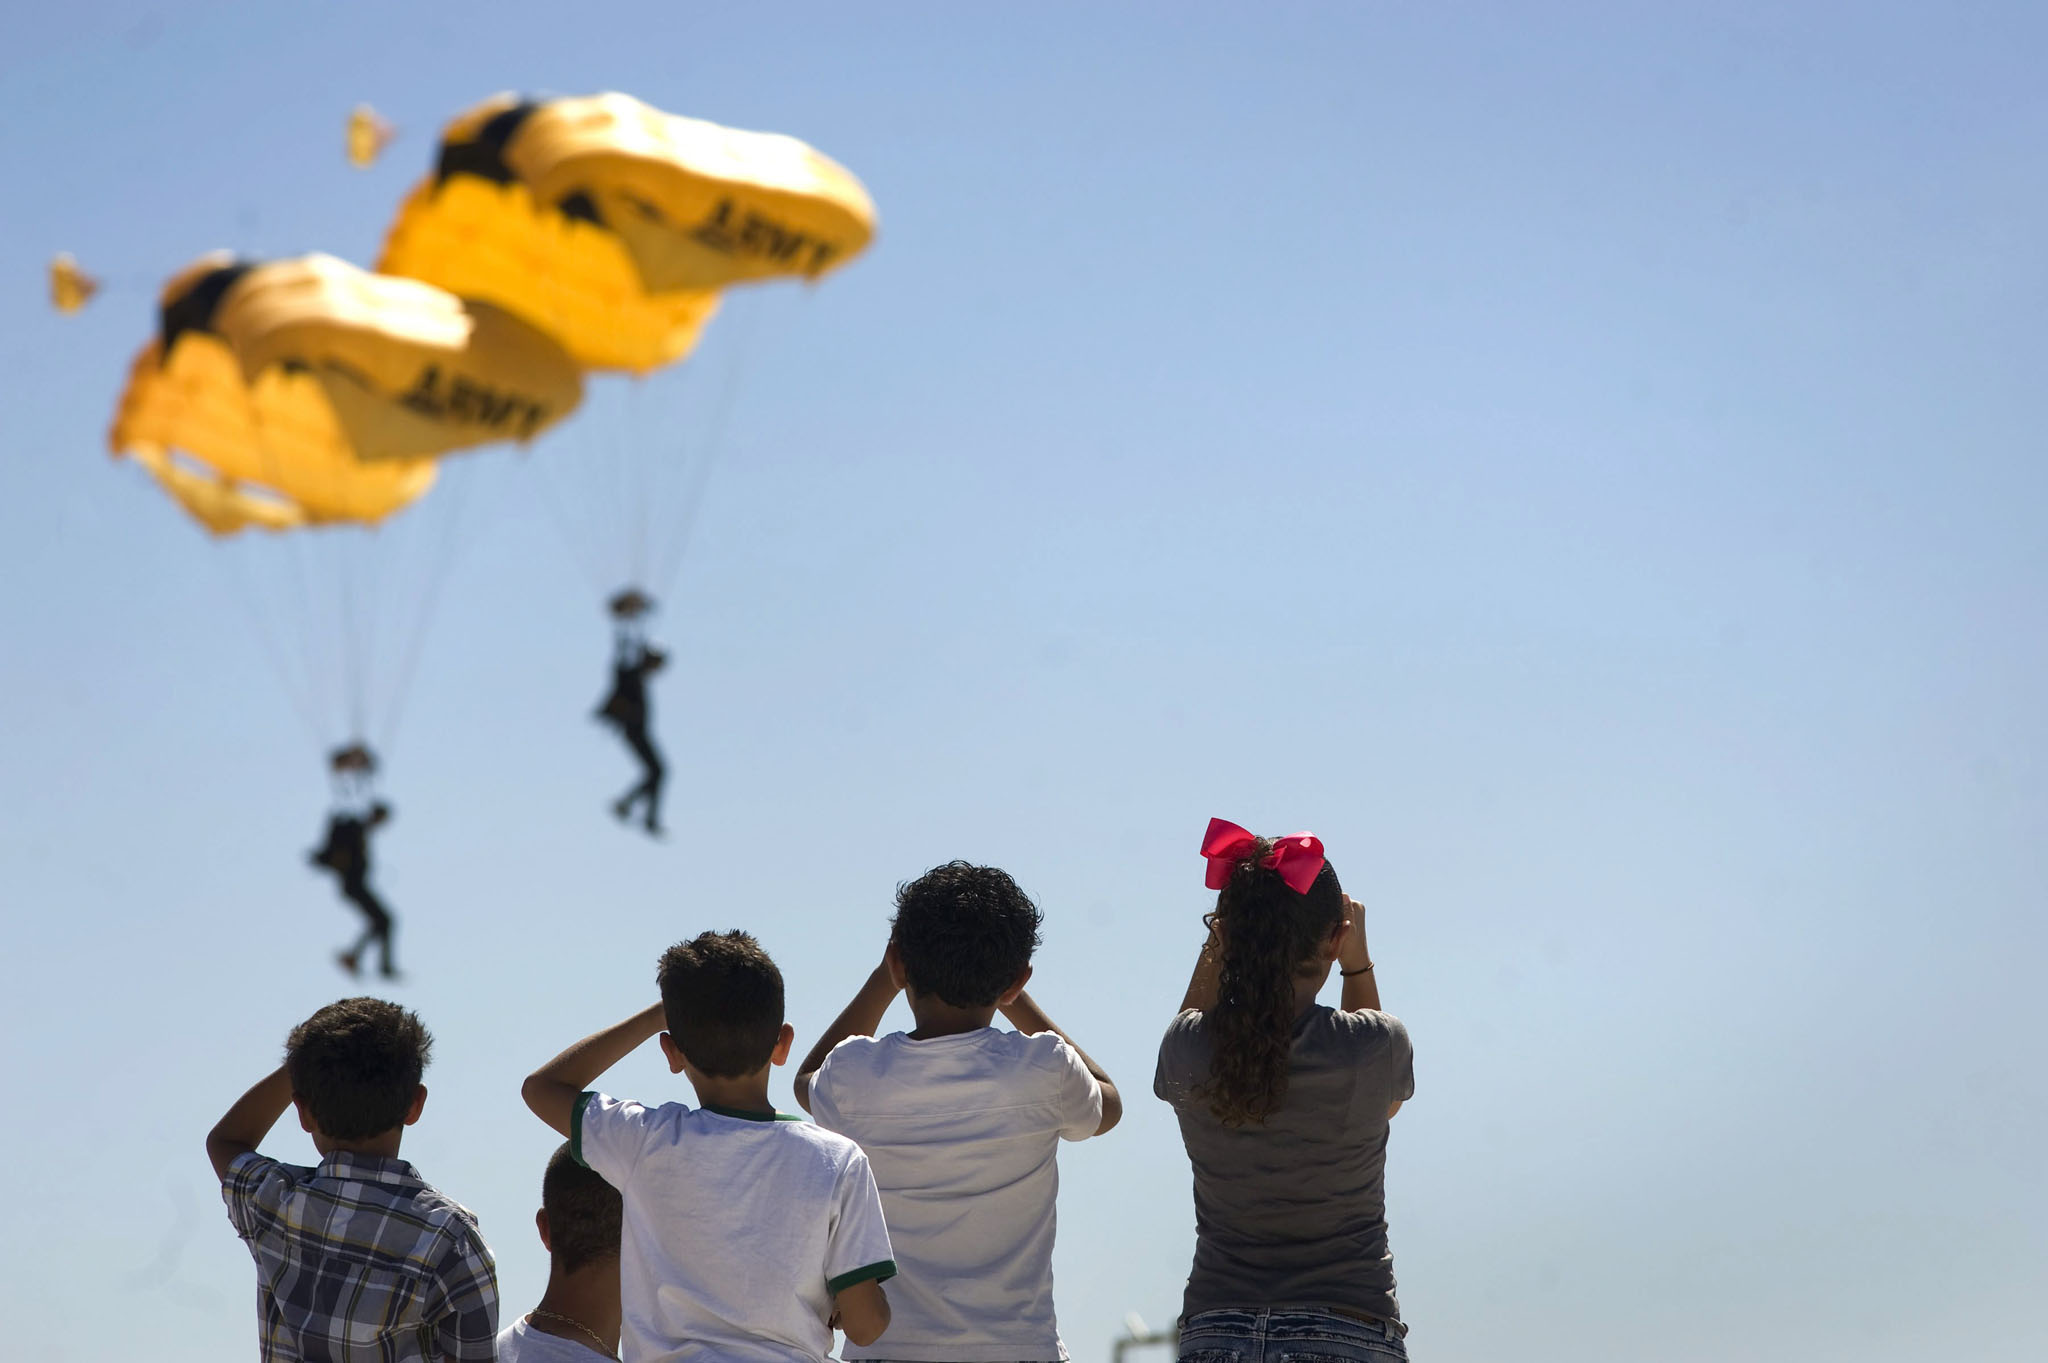 Miramar Air Show in San Diego, California...epaselect epa04434113 Children watch a US Army parachute demonstration team at the Miramar Air Show, one of the largest military air shows in the world, in San Diego, California, USA, 05 October 2014.  EPA/DAVID MAUNG